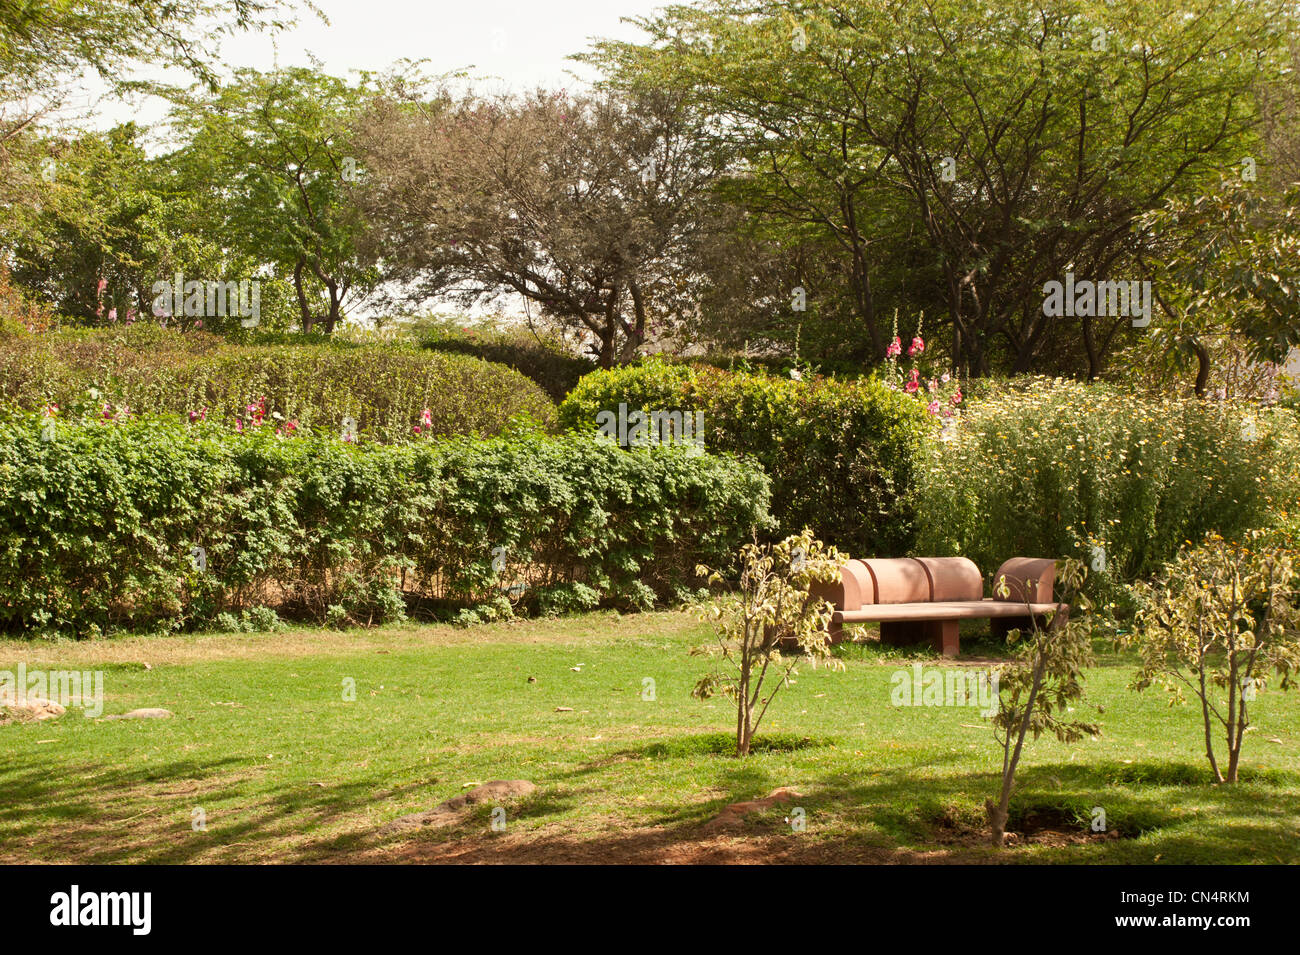 Stone Bench Inside A Garden. This Is The Garden Of 5 Senses In South Delhi  With A Large Number Of Plants, Trees And A Great Lawn